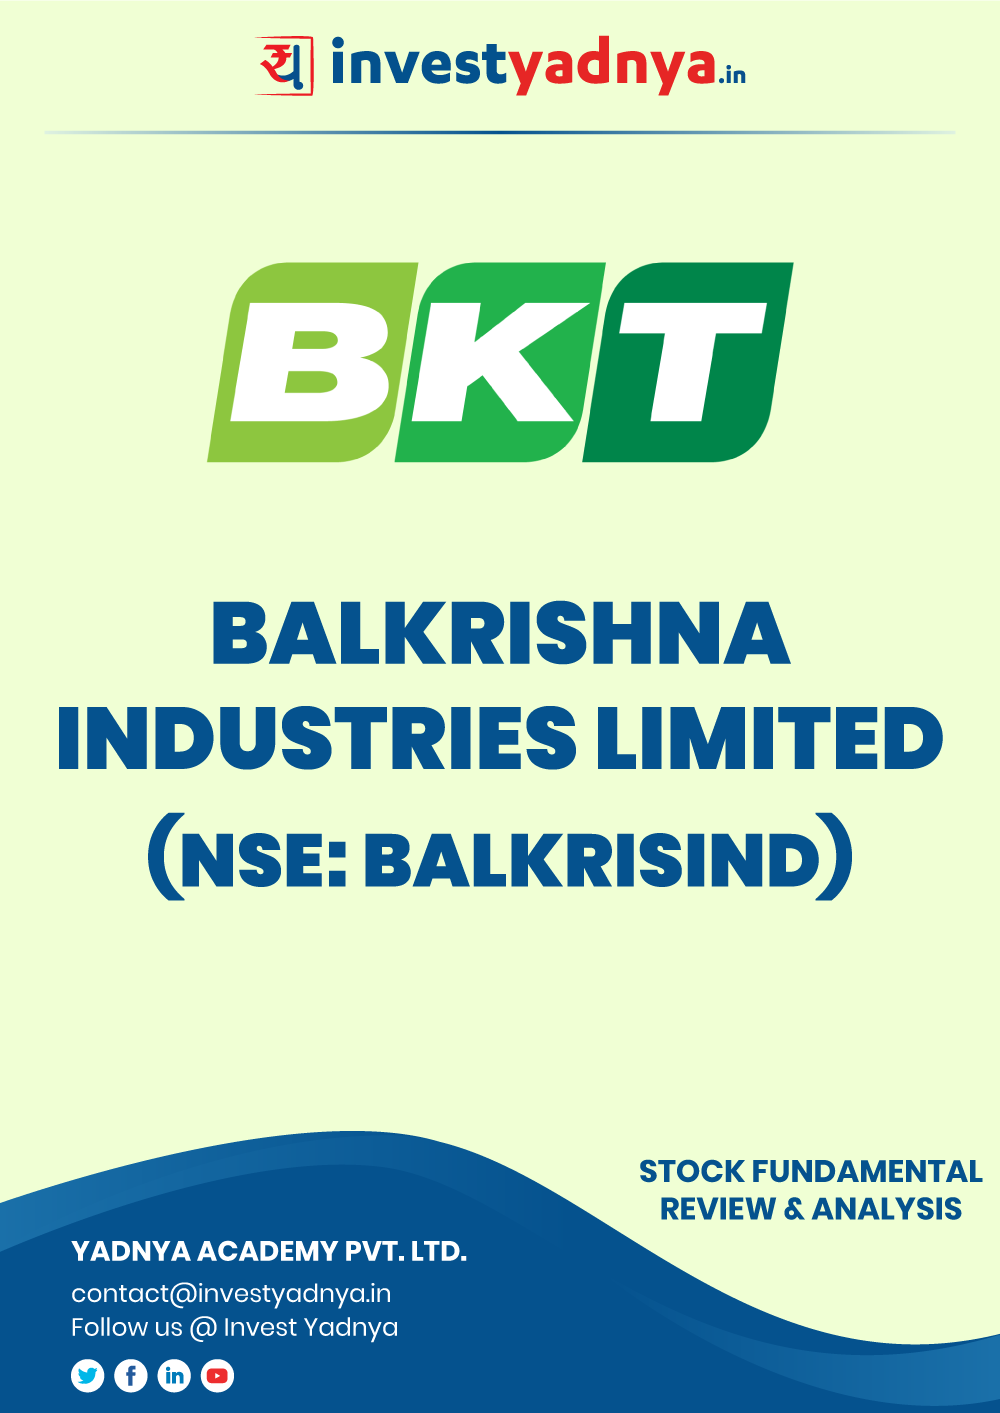 This e-book contains in-depth fundamental analysis of Balkrishna Industries considering both Financial and Equity Research Parameters. It reviews the company, industry competitors, shareholding pattern, financials, and annual performance. ✔ Detailed Research ✔ Quality Reports